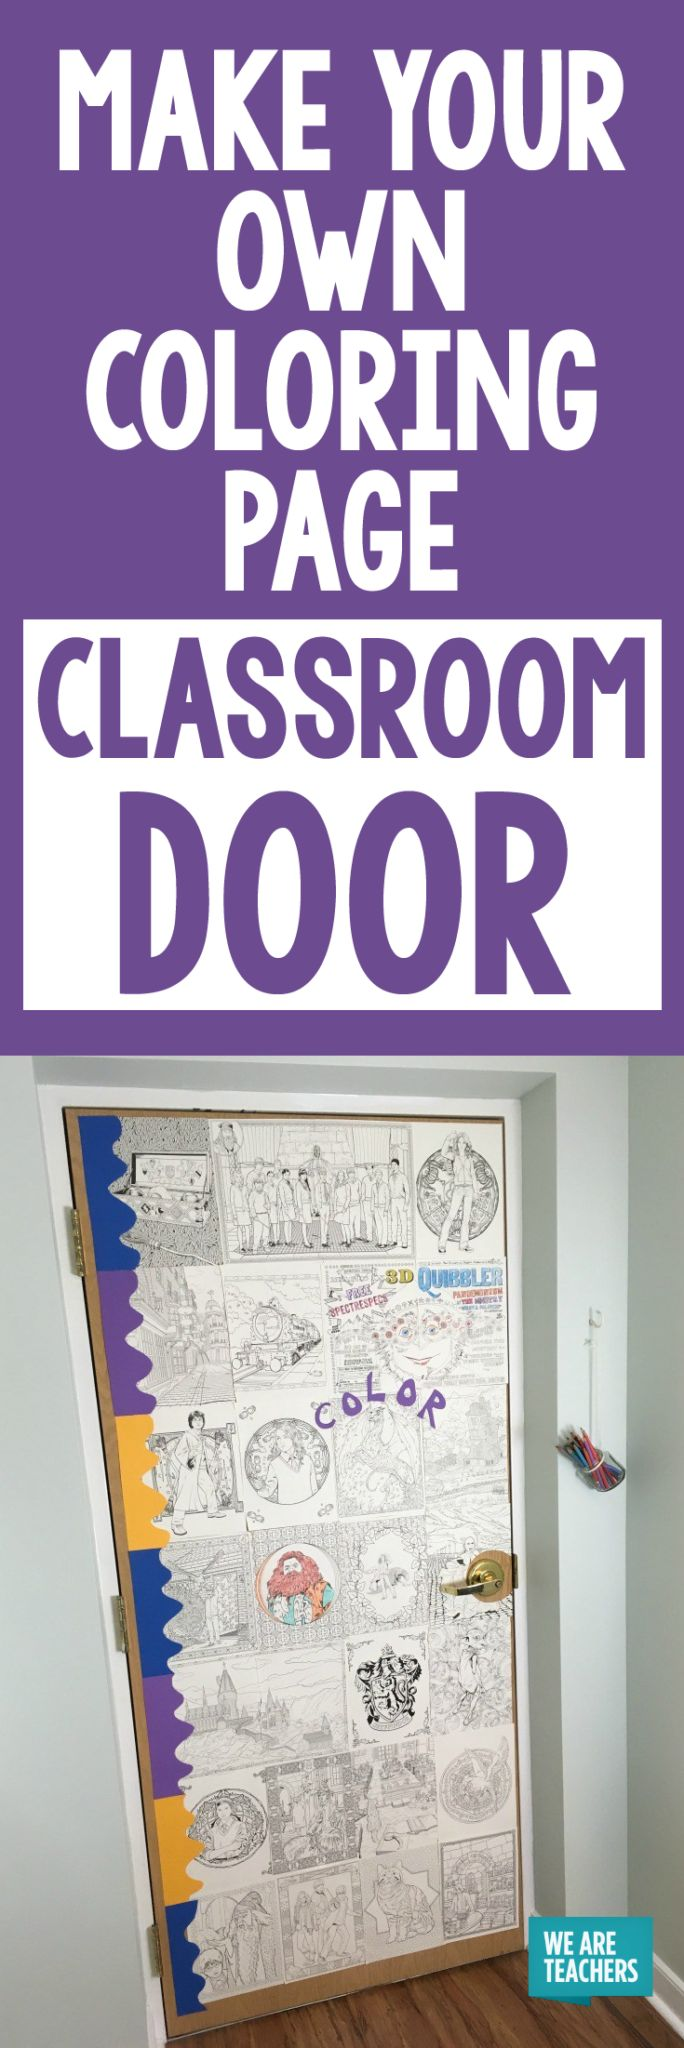 Door decorations for spanish class - Make Your Own Coloring Page Classroom Door